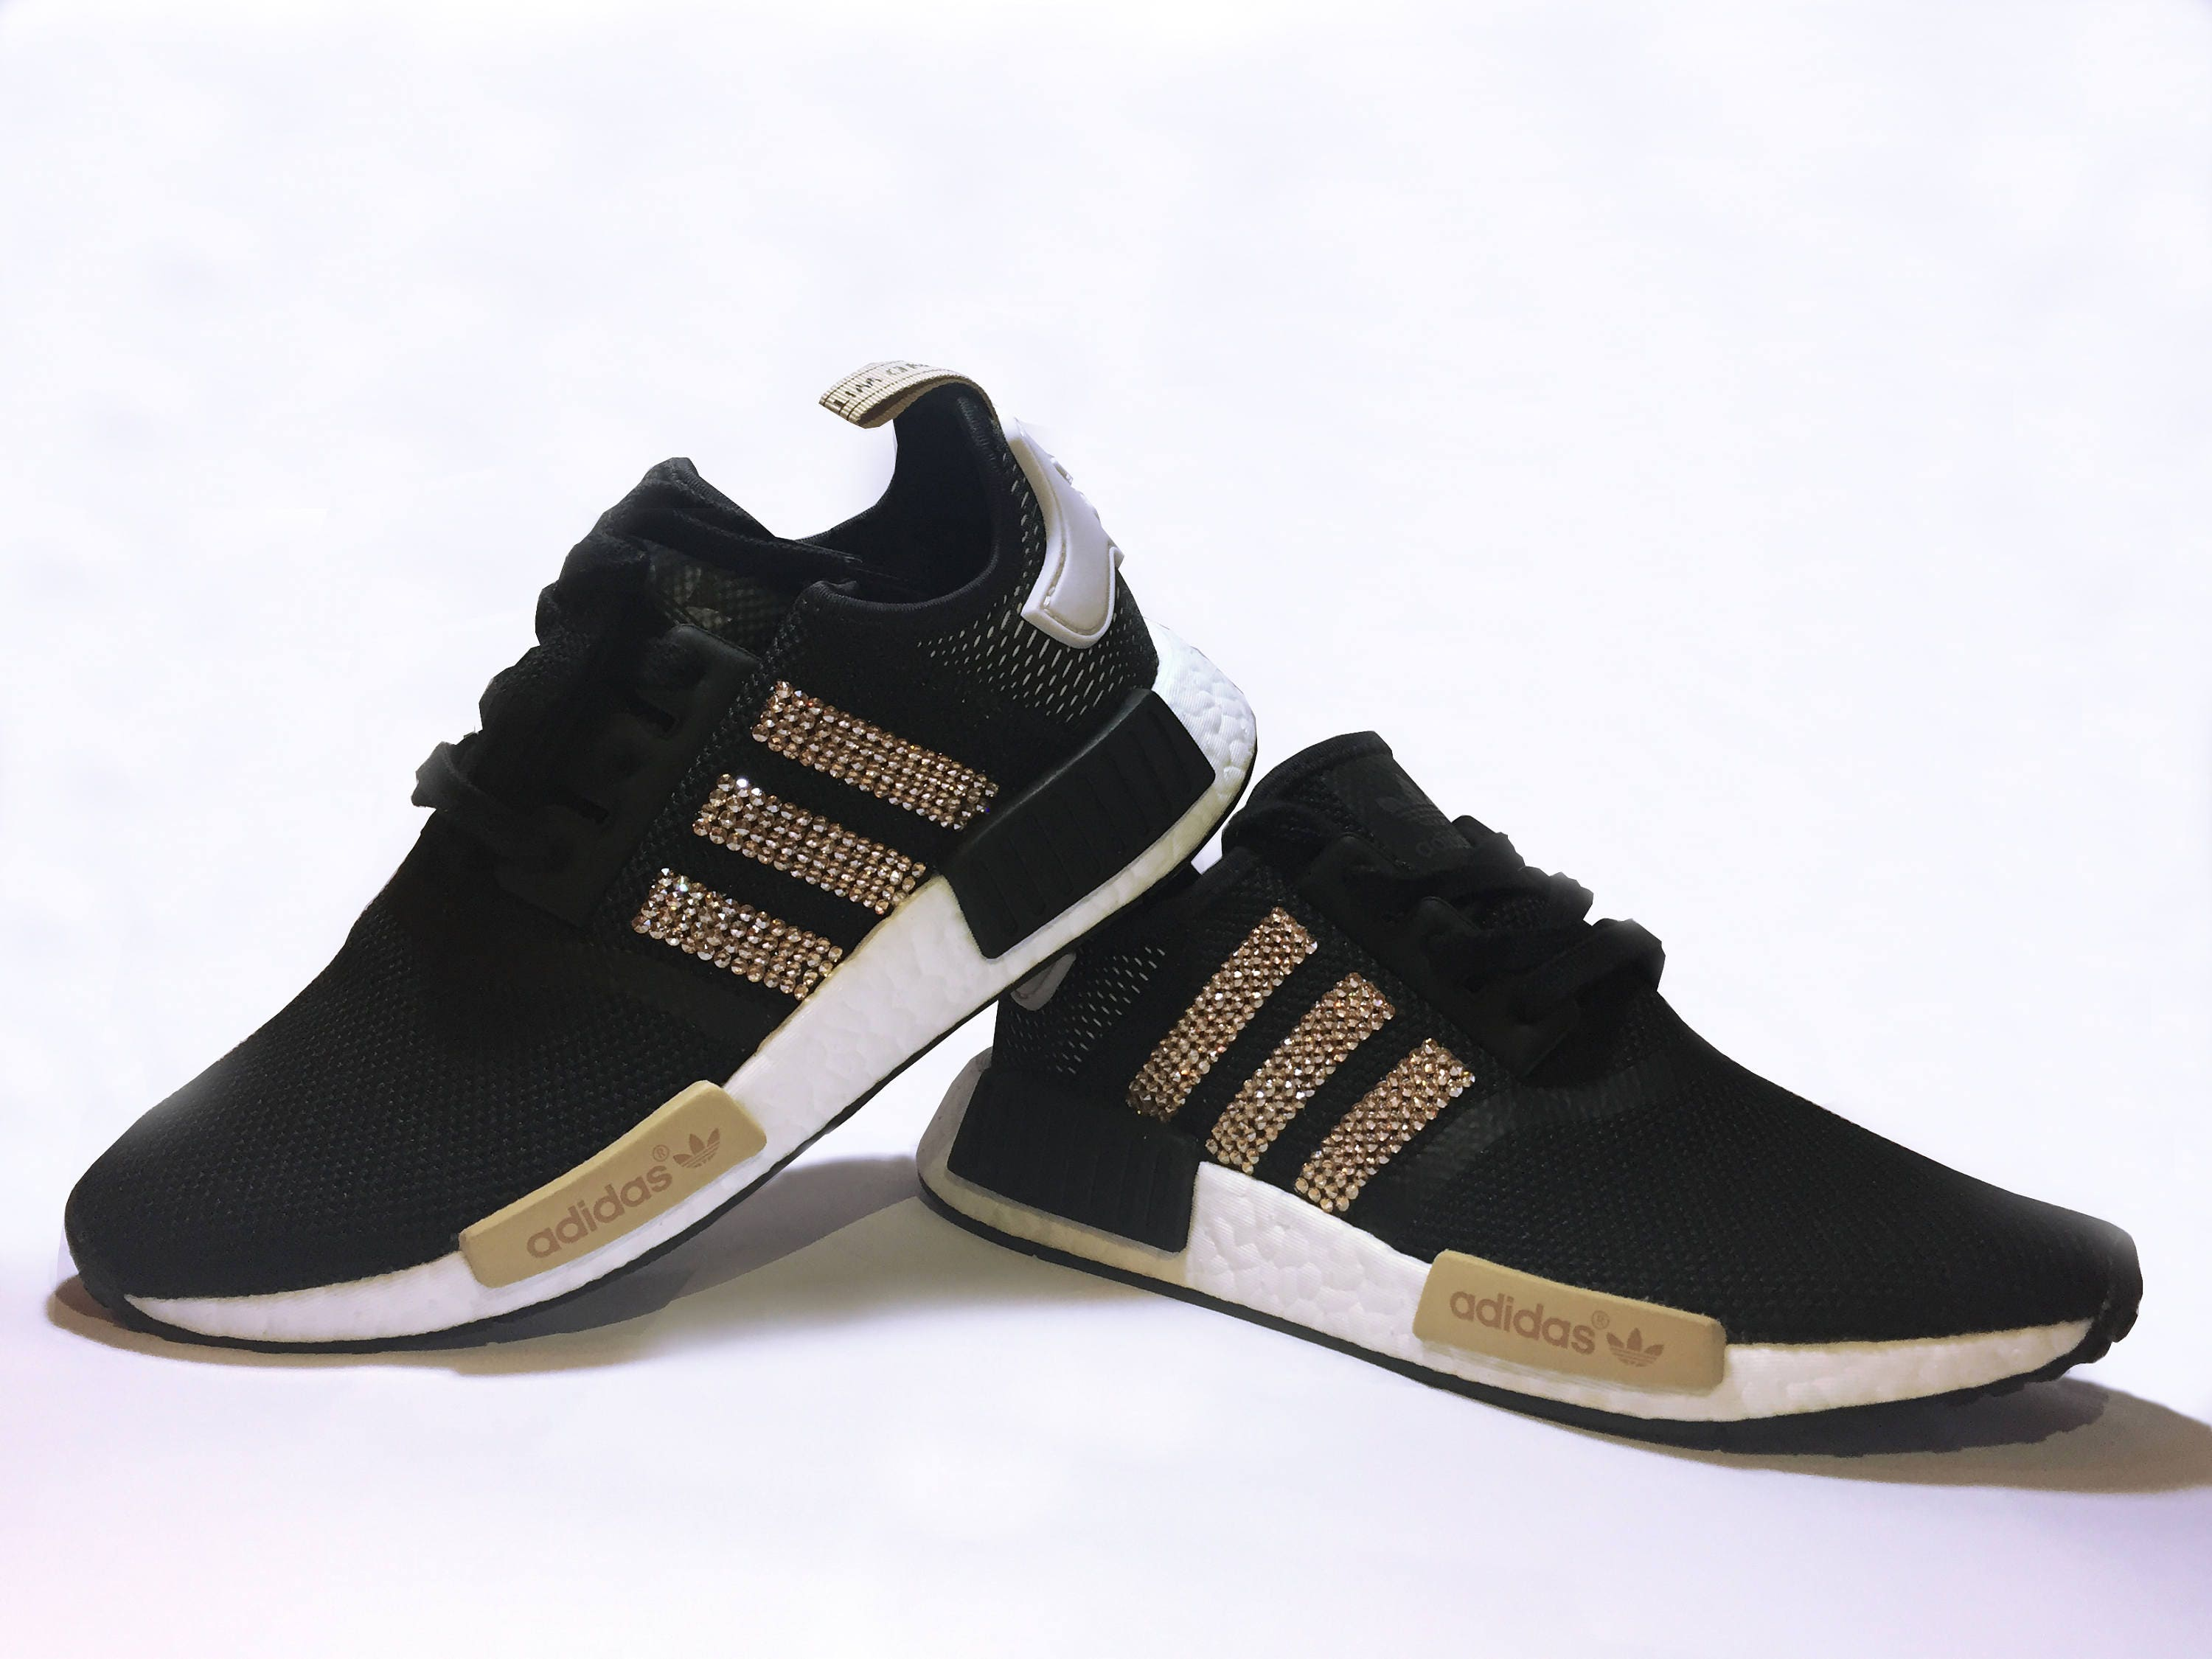 f340e2e70 Women s Adidas NMD Black Runner Casual Shoes Customized